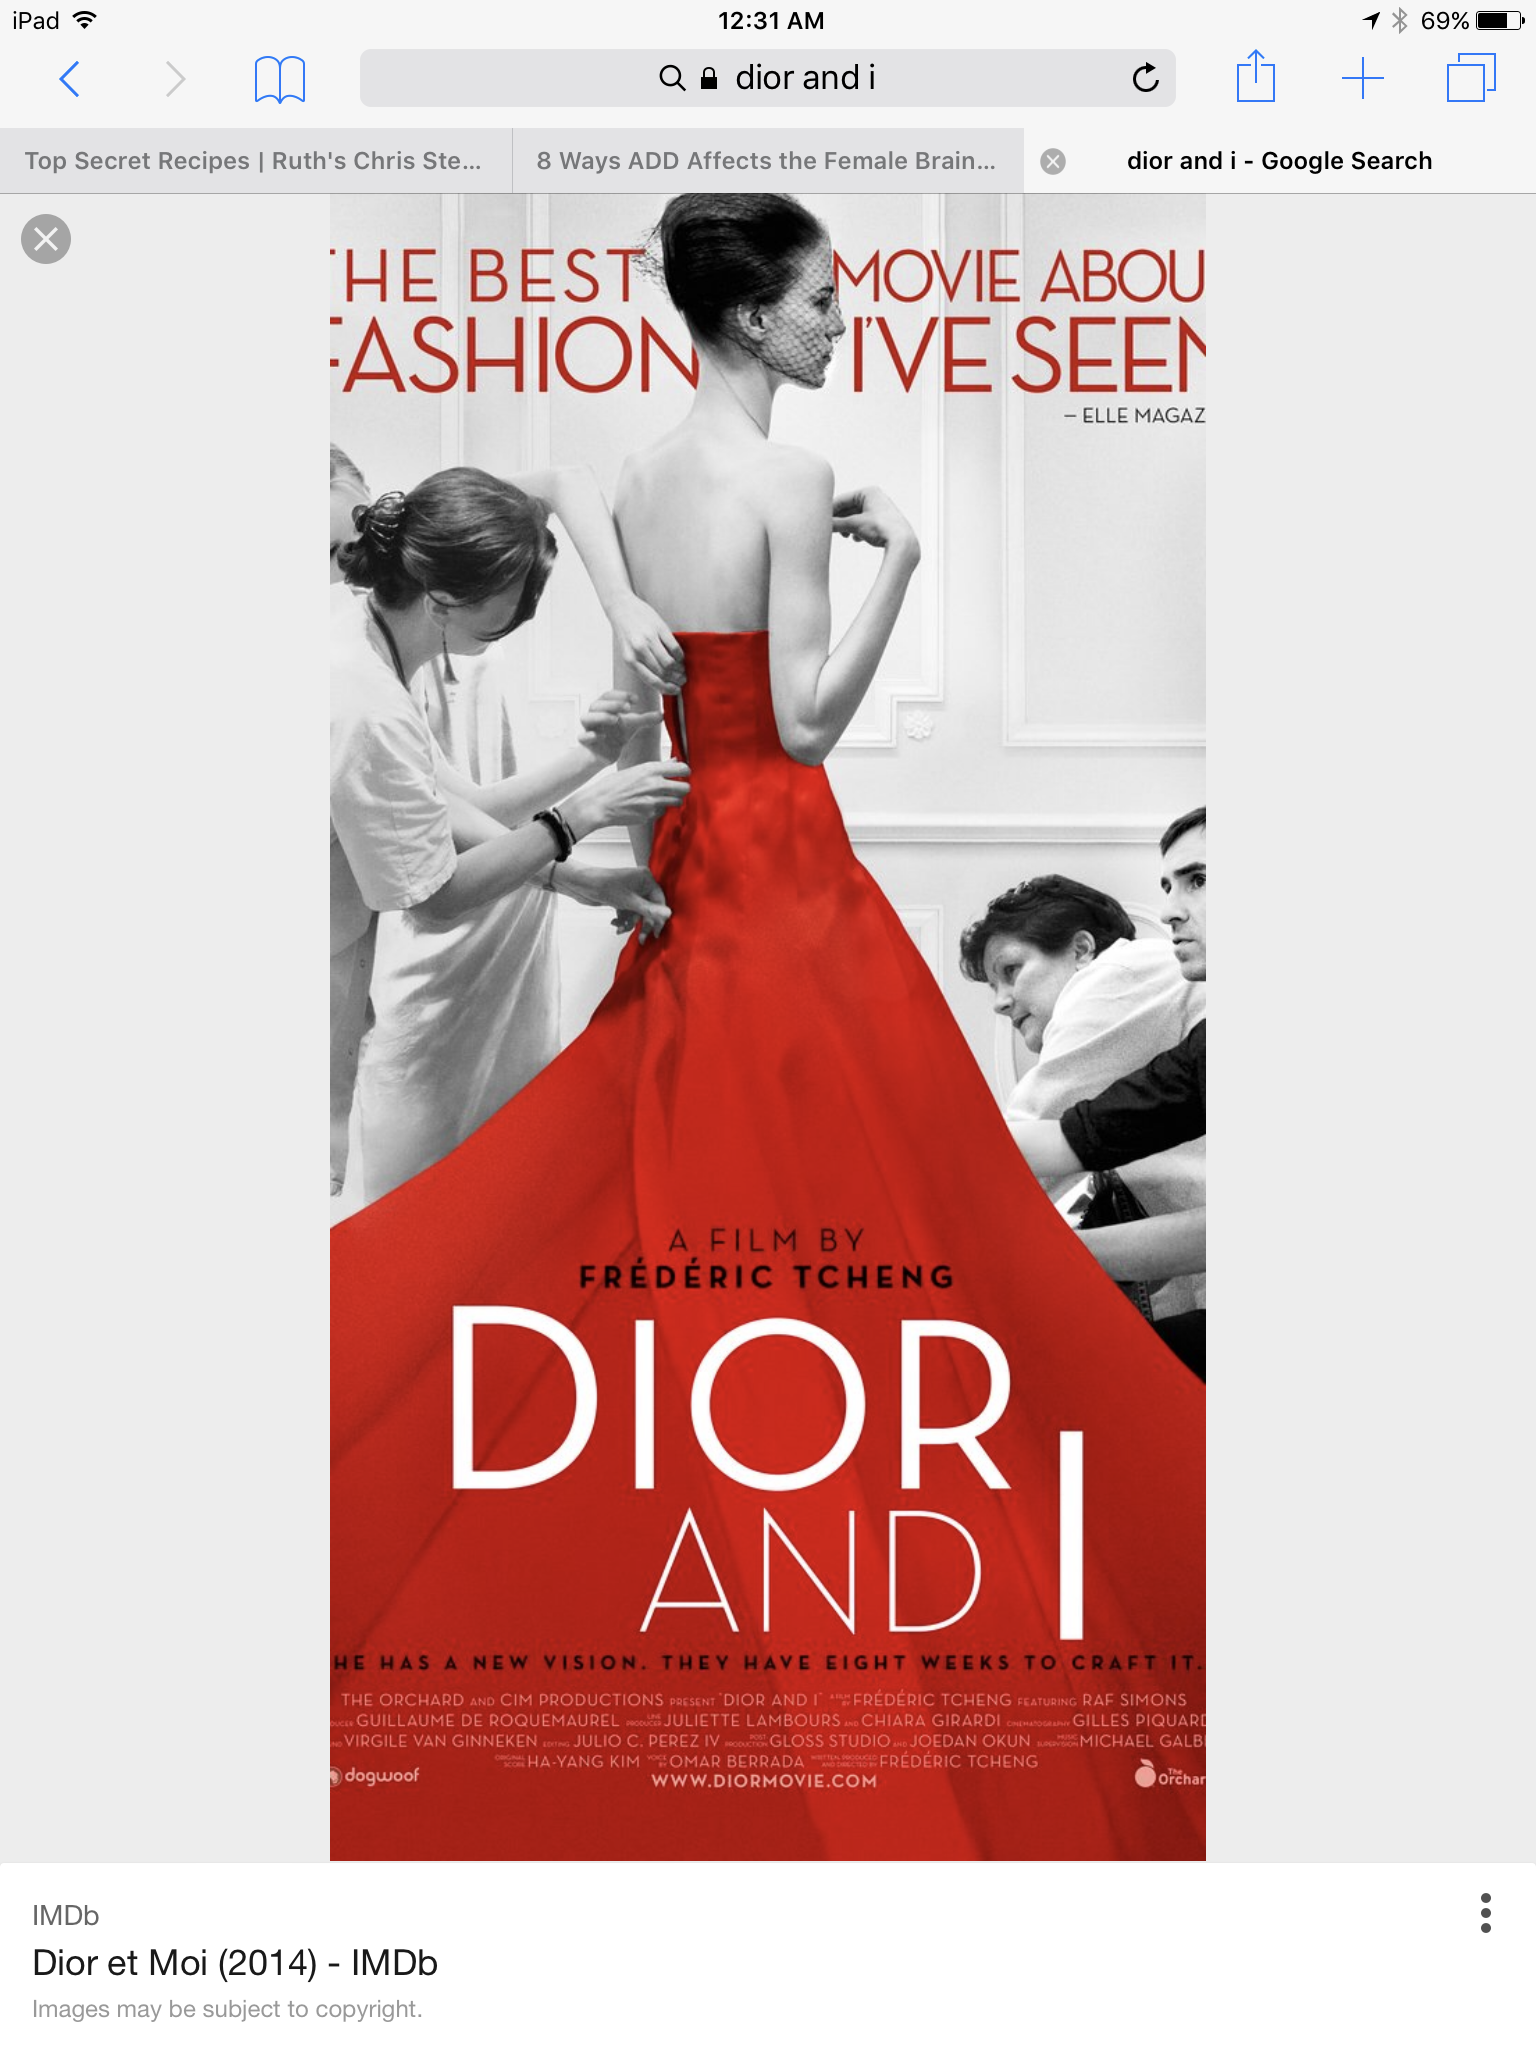 Dior and I is a 2014 documentary film written and directed